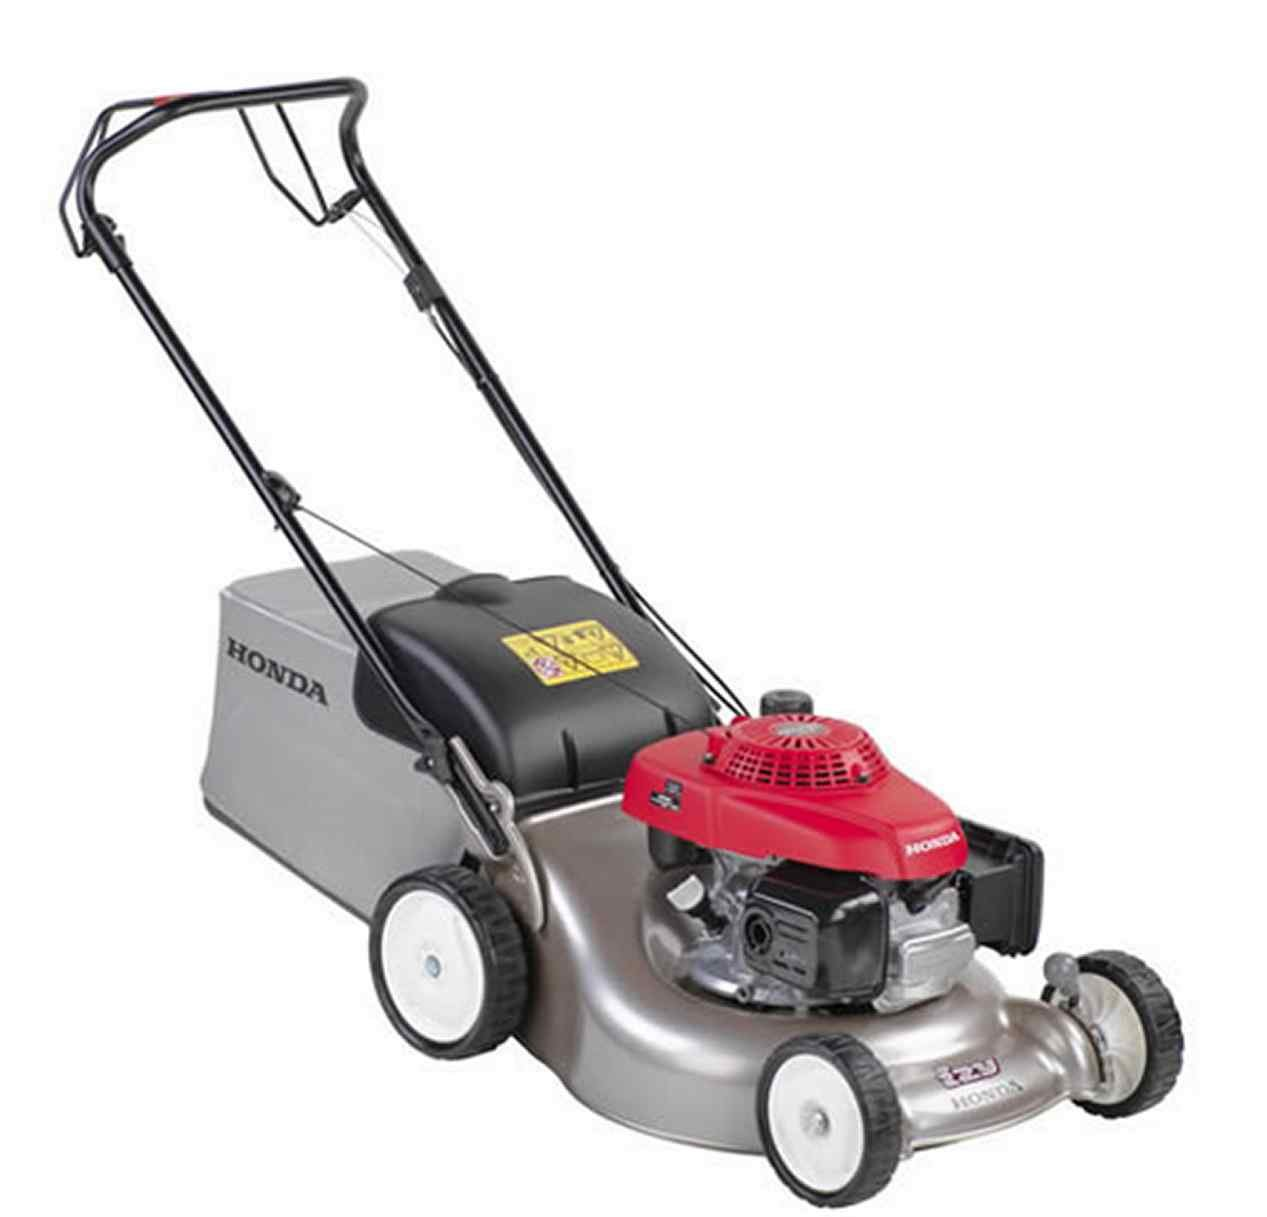 Honda Izy HRG 466 SK 4-Wheel Self Propelled Petrol Lawn Mower:  Amazon.co.uk: DIY & Tools